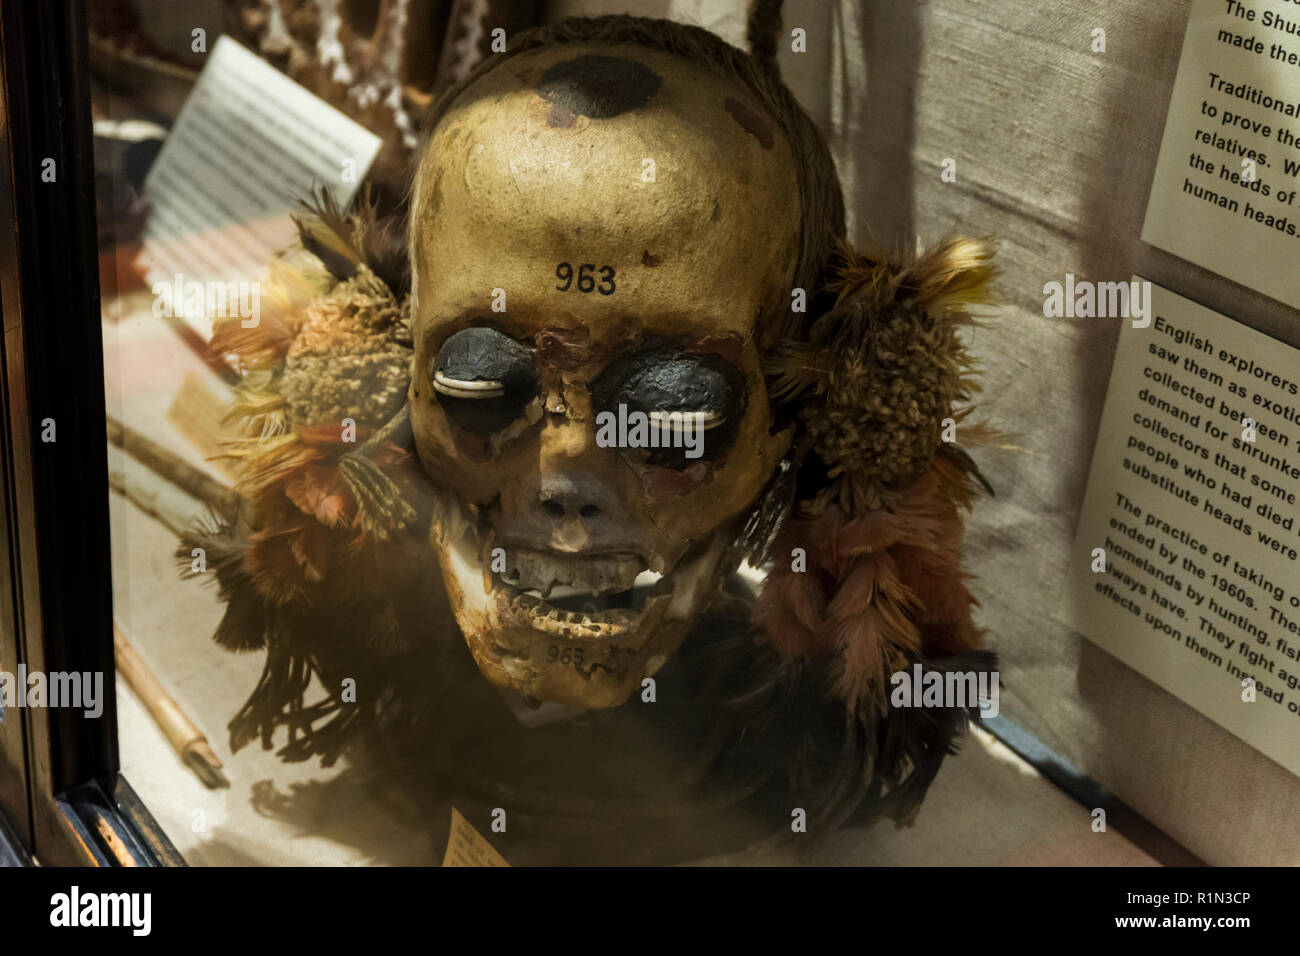 A trophy skull in a display case at the Pitt-Rivers Museum. Originally from the Mundurucu indians, a head-hunting tribe of Brazil until the 1960s. - Stock Image